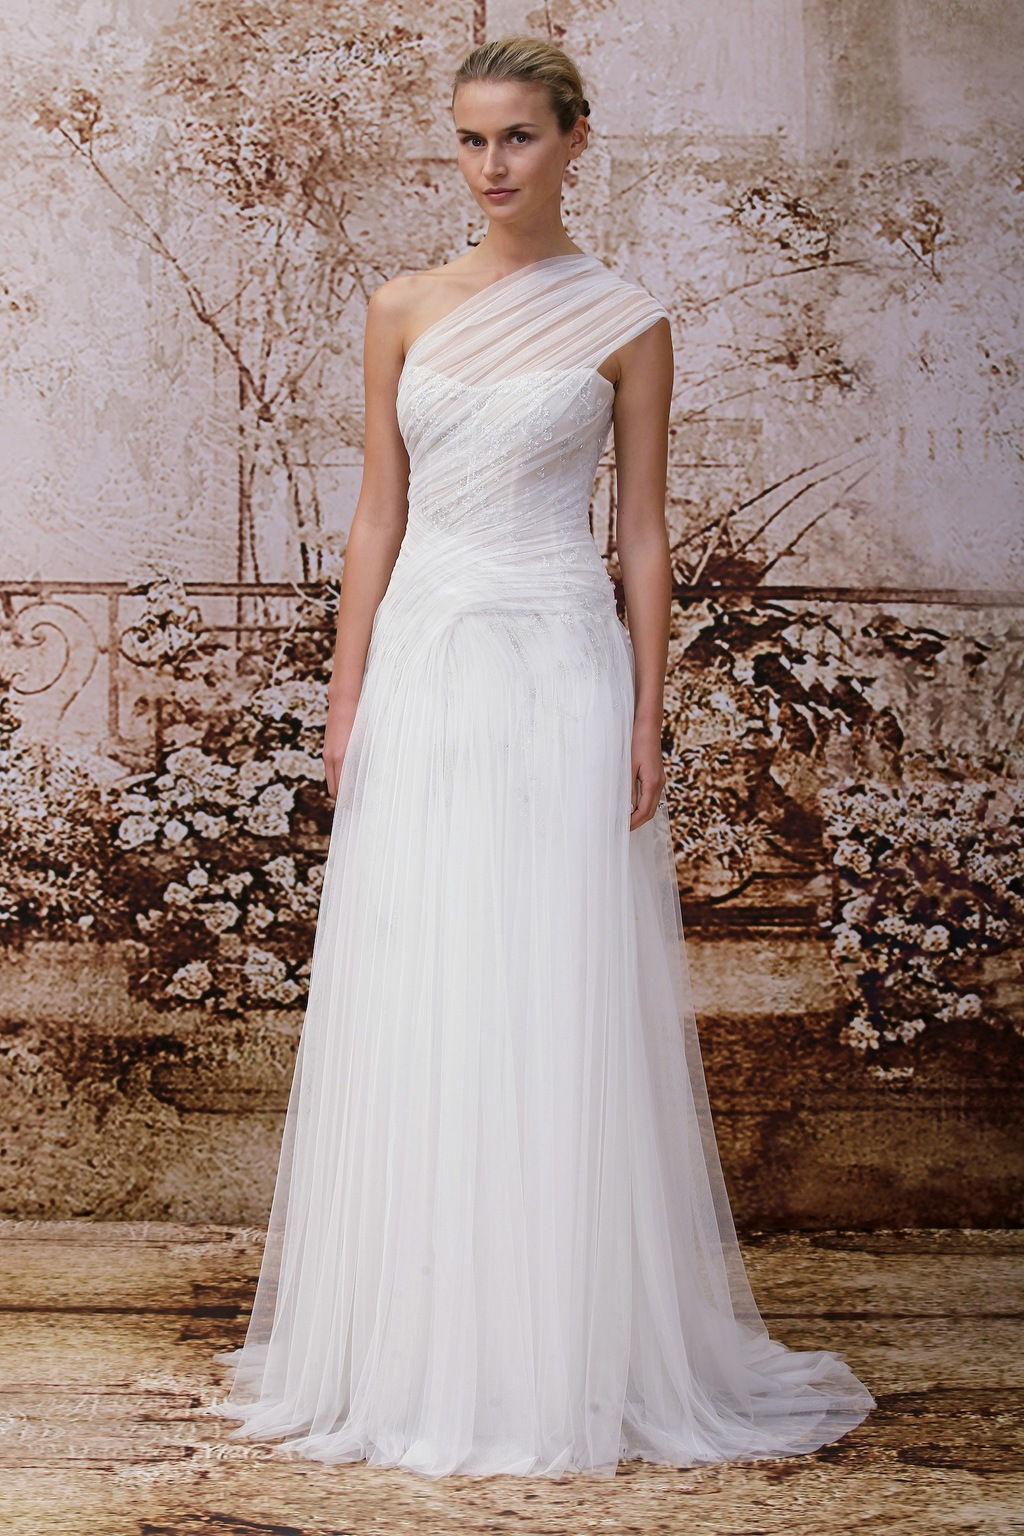 Wedding-dress-by-monique-lhuillier-fall-2014-bridal-look-12.full